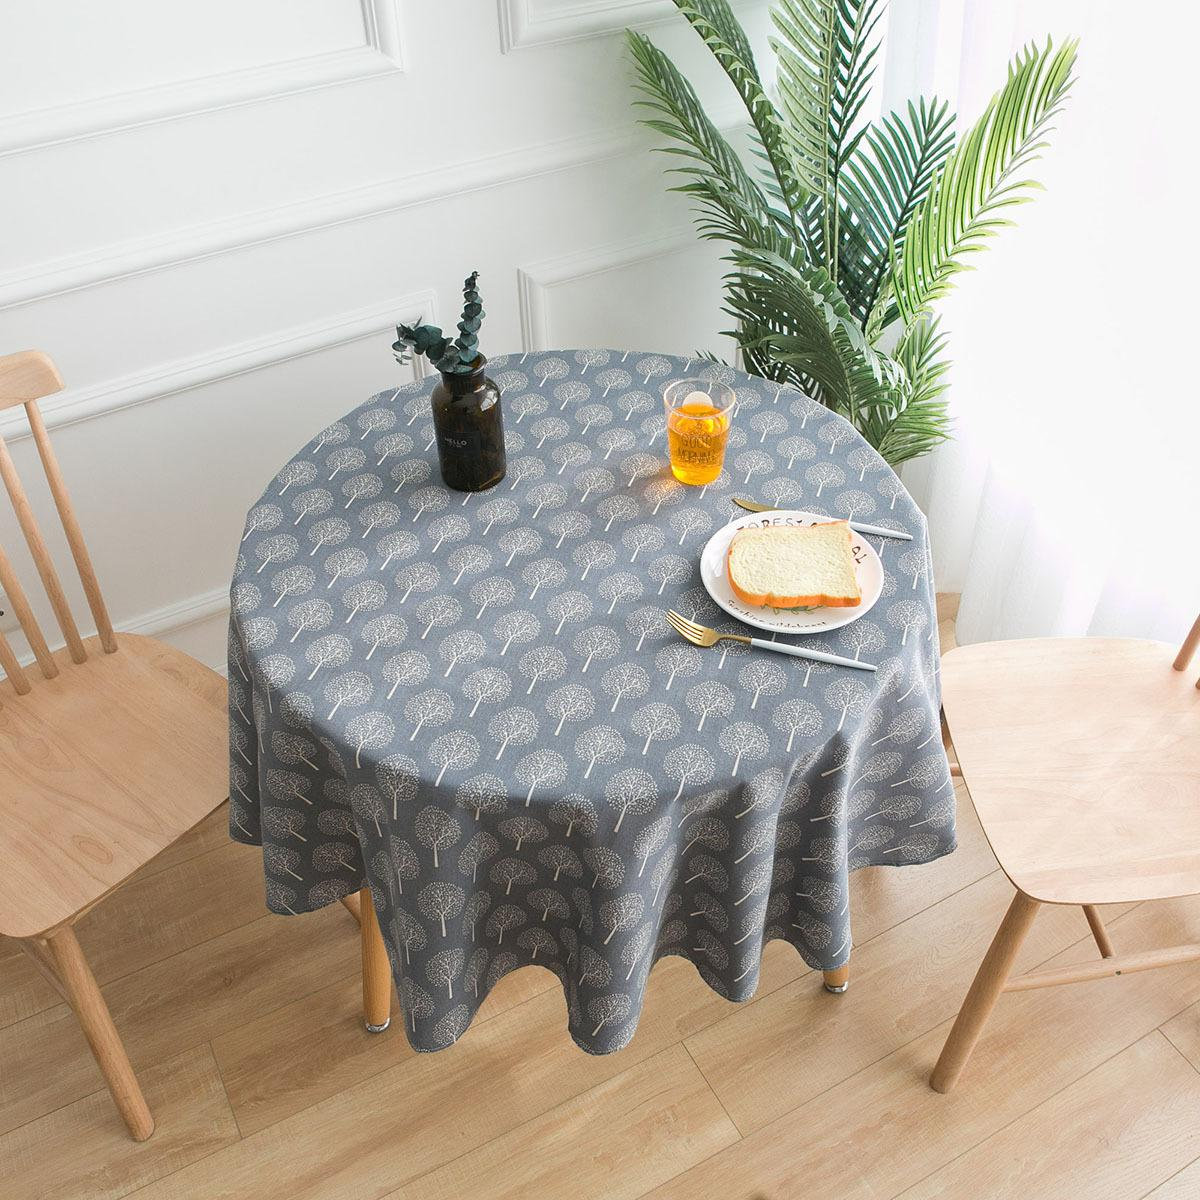 Grey Tree Printed Round Table Cloth Cotton Linen Fabric Tablecloth Table Cover Wedding Party Decoration Plastic Round Tablecloths 120 Inch Round Tablecloth From Tangshanxiexin 8 05 Dhgate Com